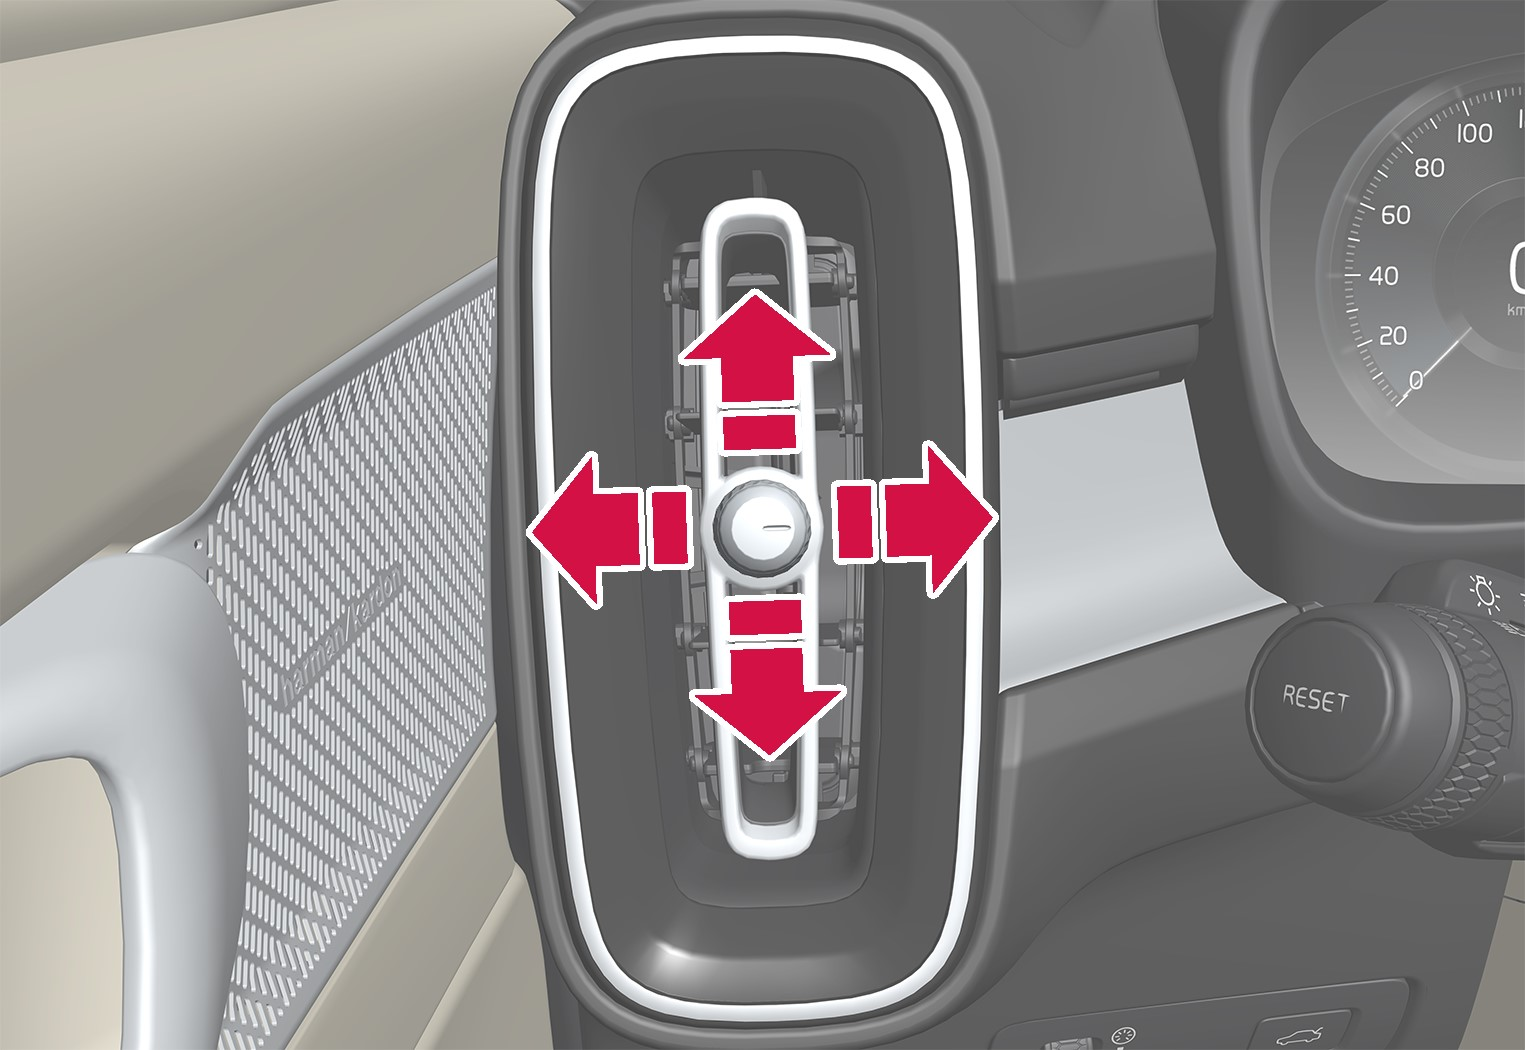 P6-1746-XC40–Climate–Air vent direction